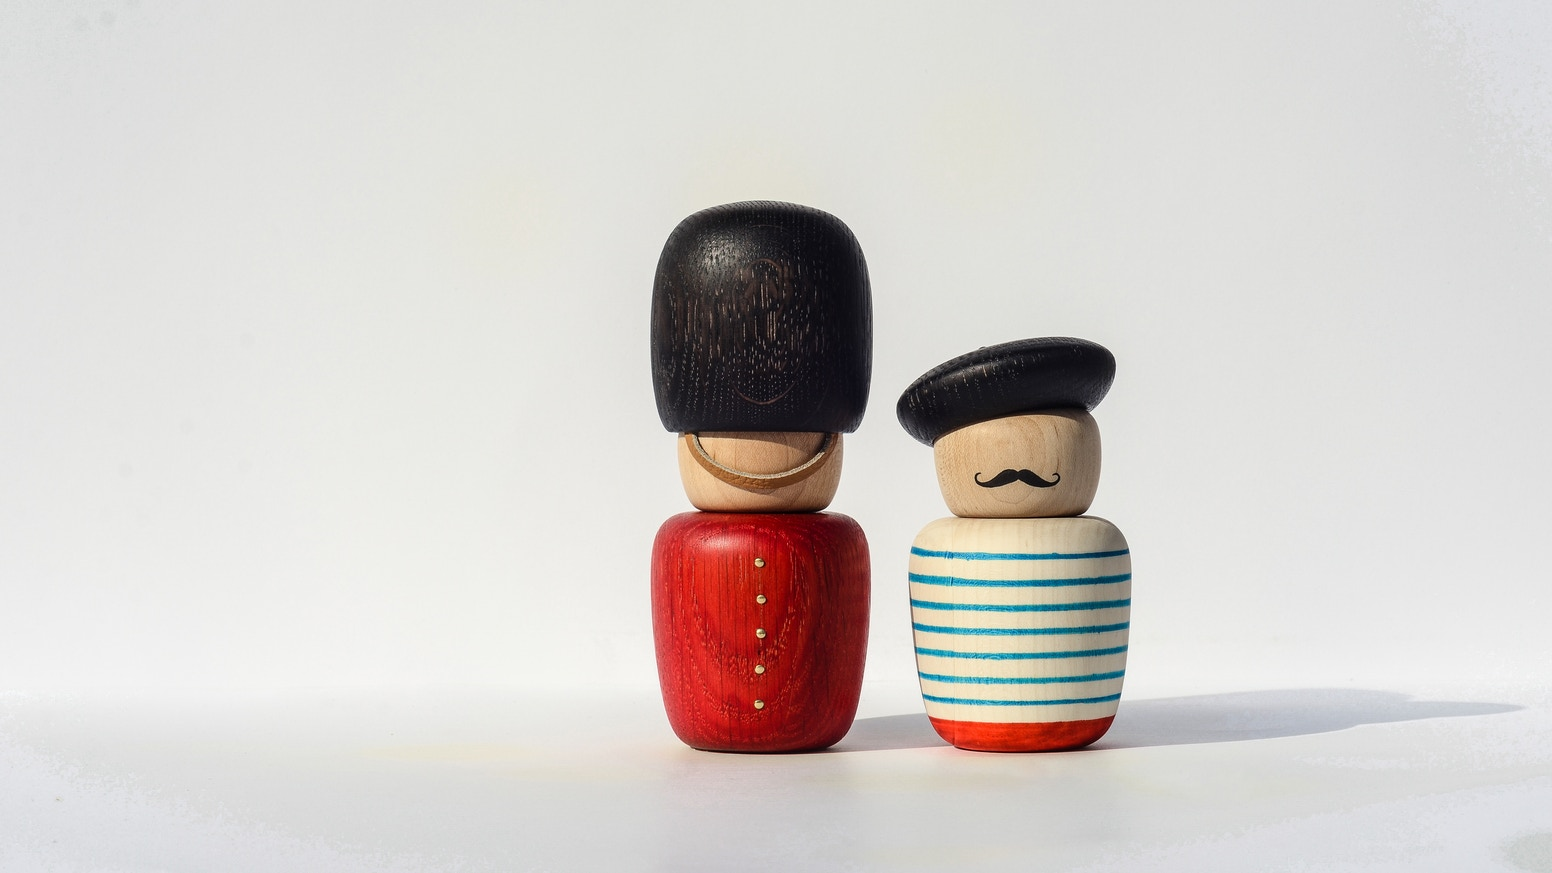 The Motleys, a family of individual wooden characters that playfully showcase different cultures and lifestyles, made by Bright Potato.